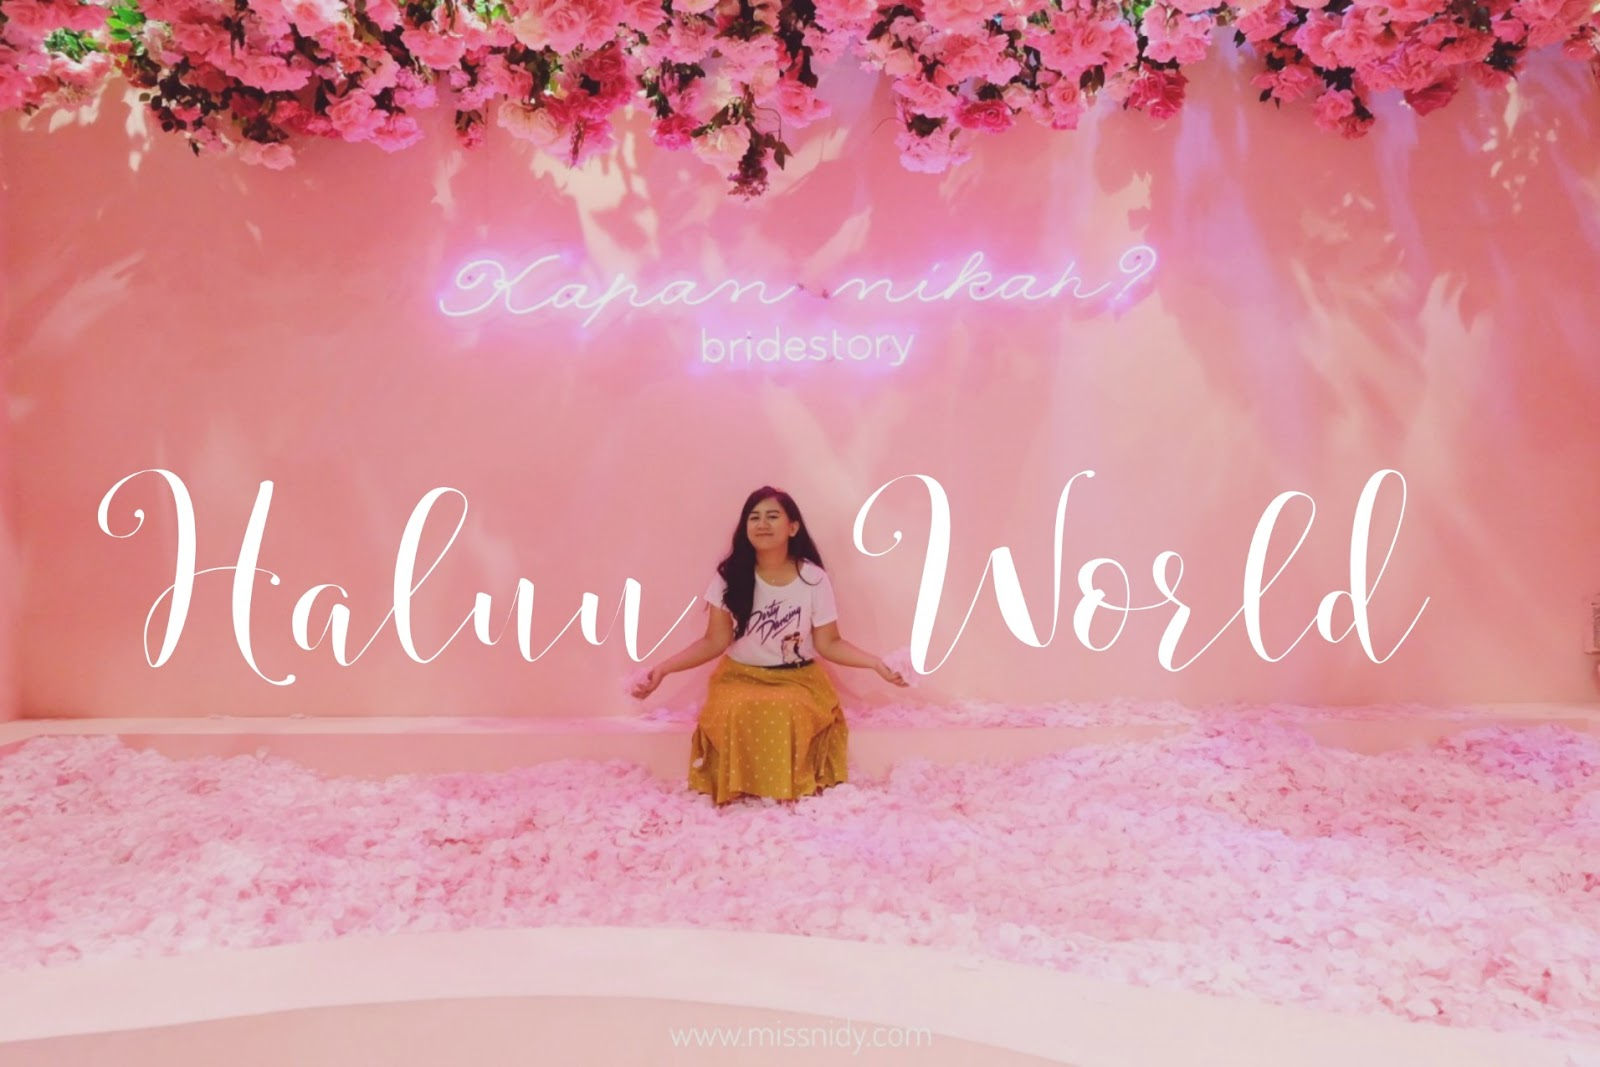 haluu world - an instagramable exhibition at plaza indonesia